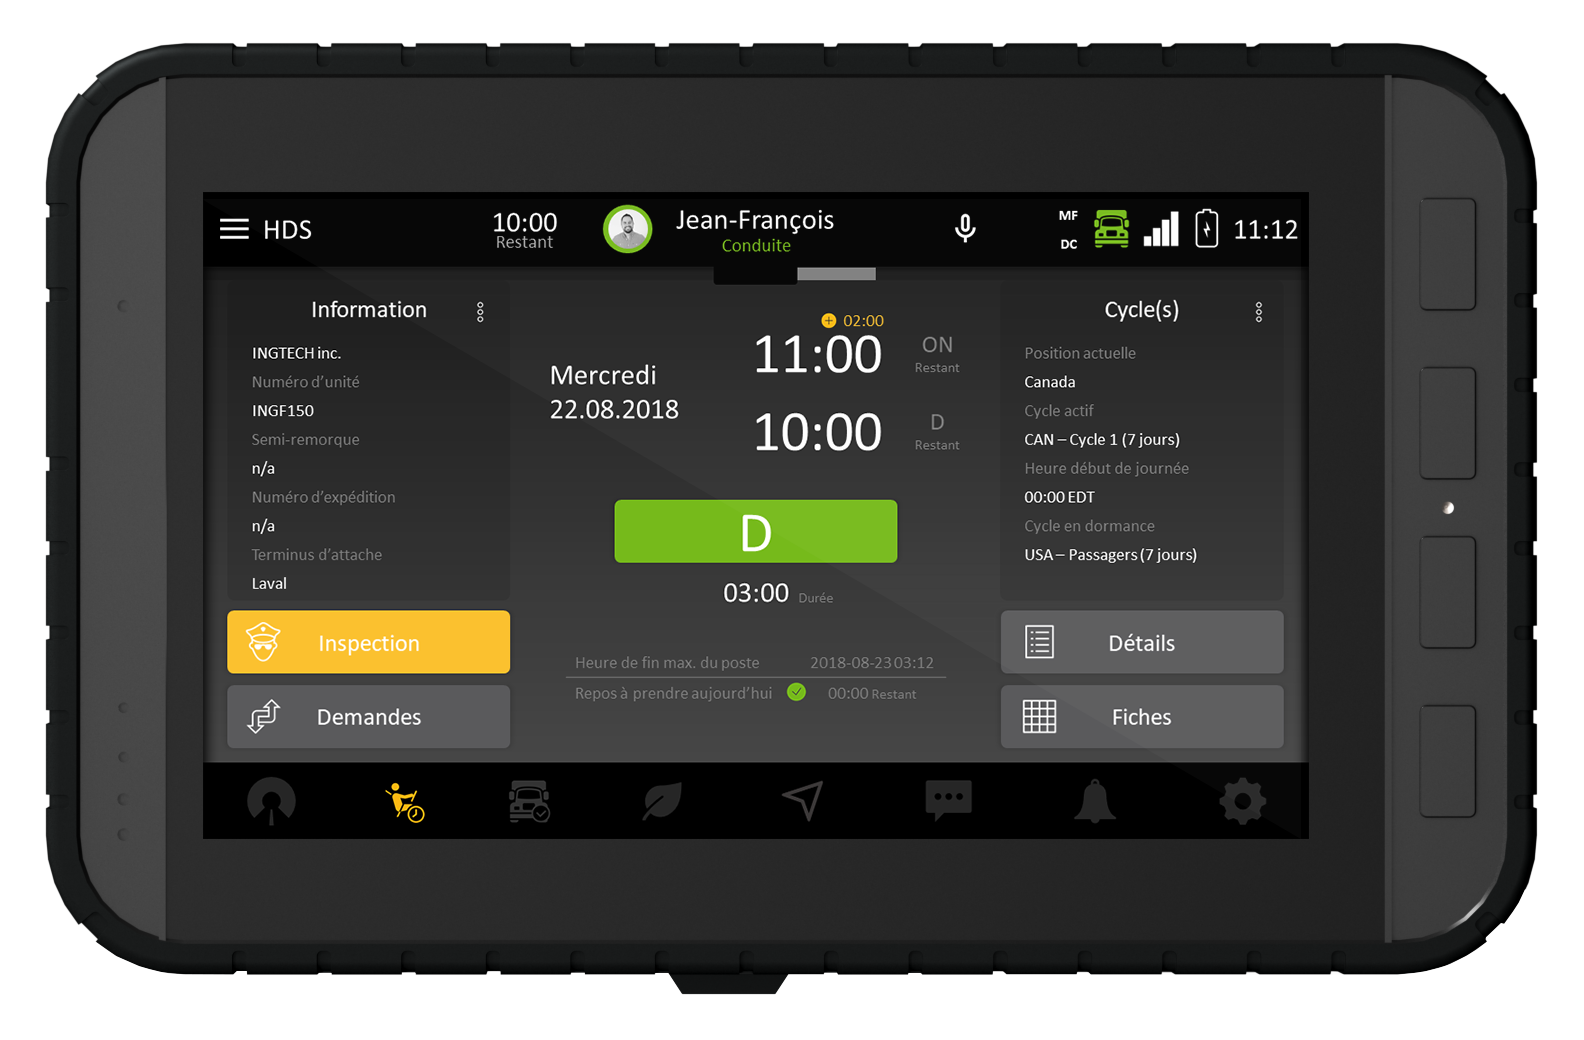 Tablet presenting the INGTECH interface